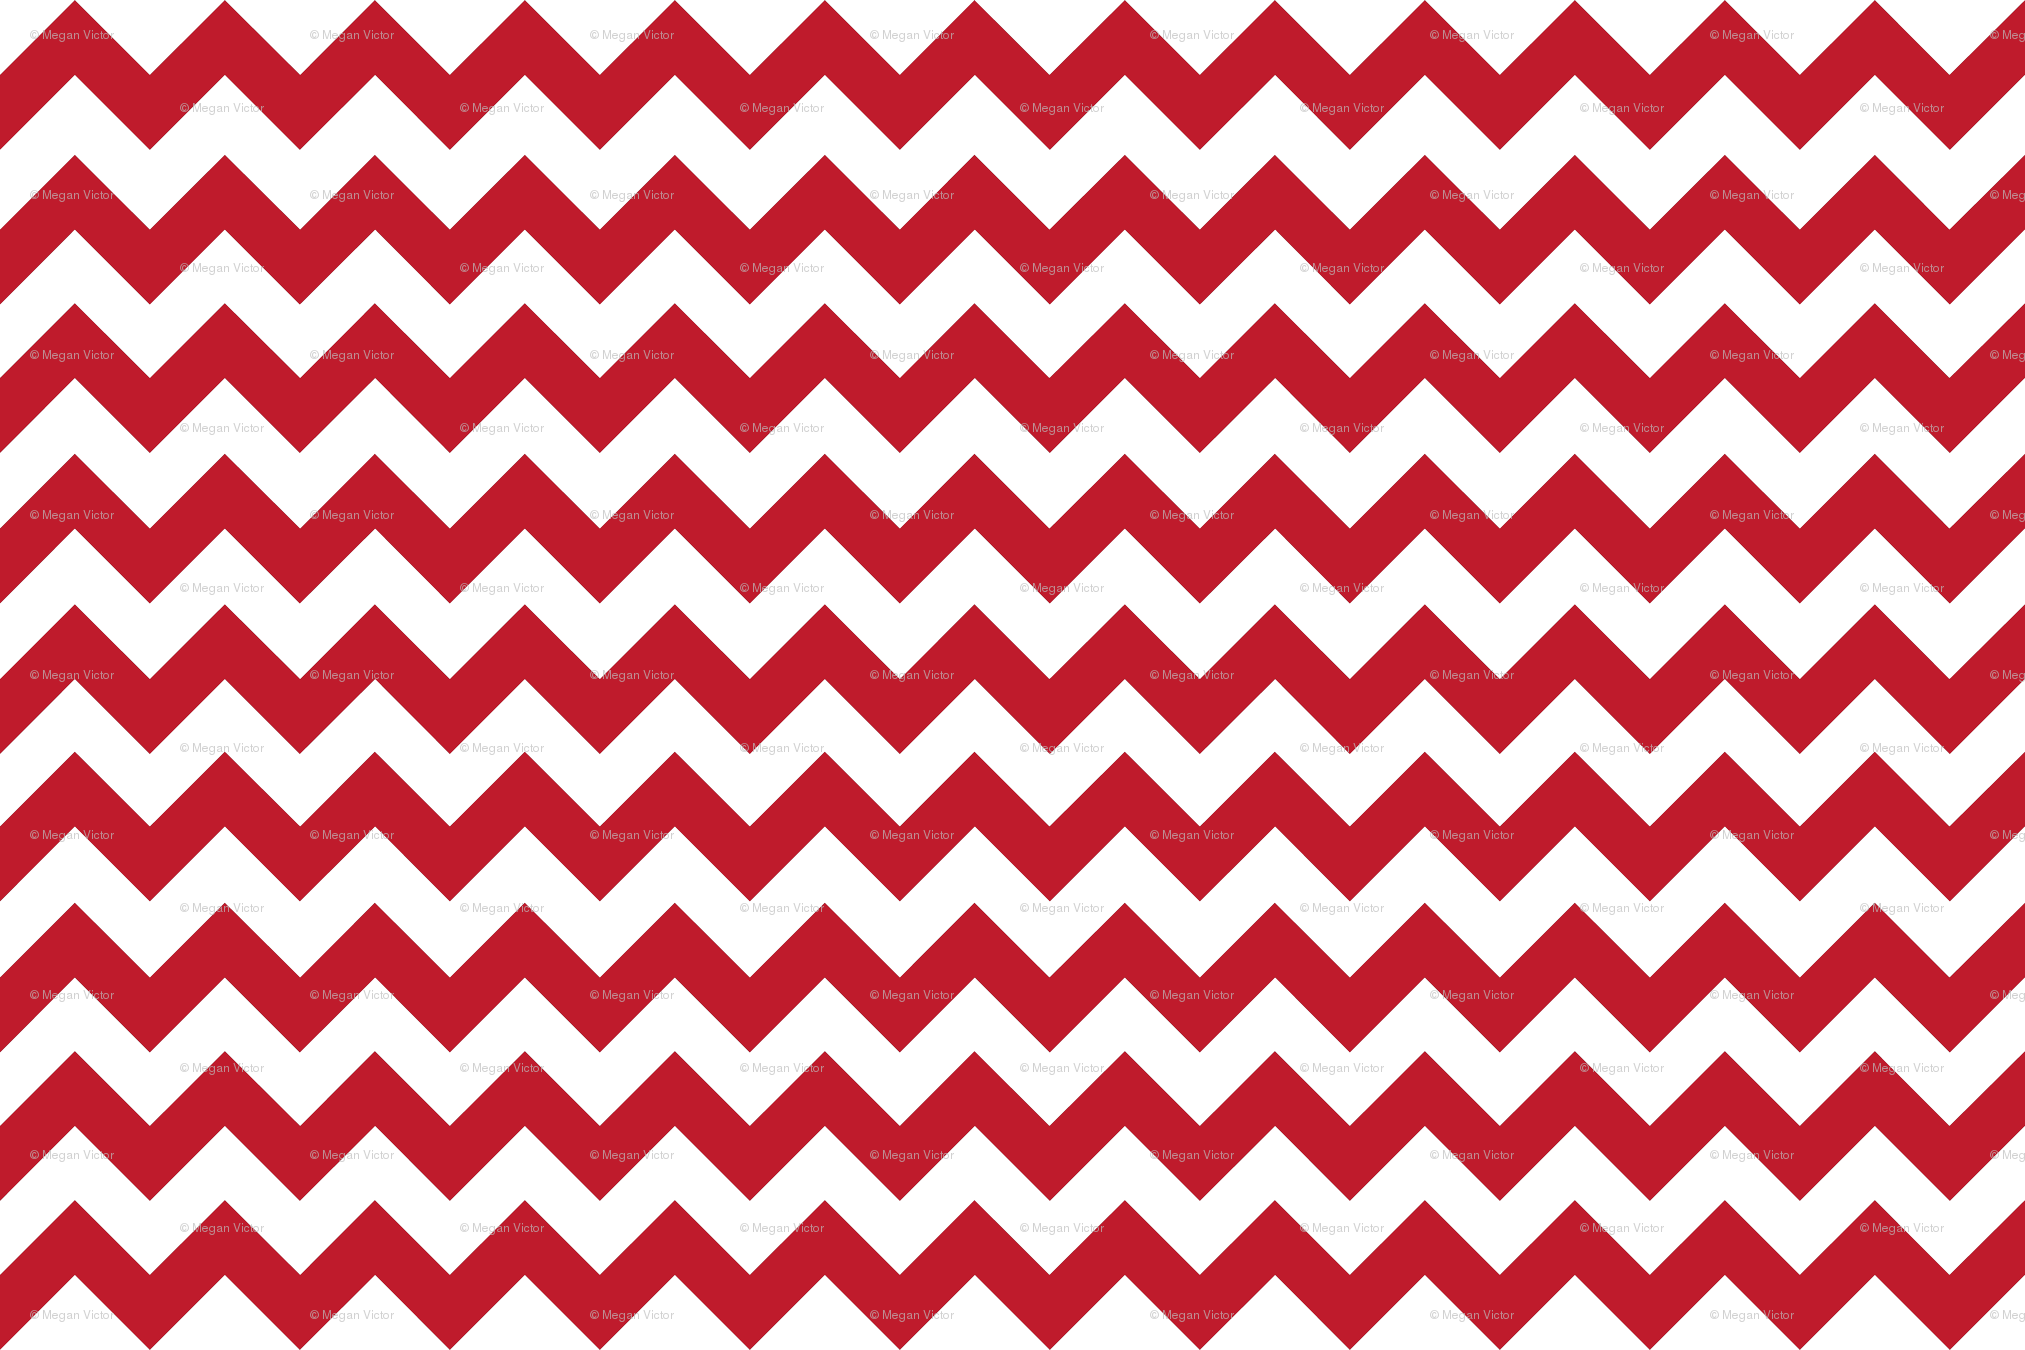 Red Chevron Wallpaper